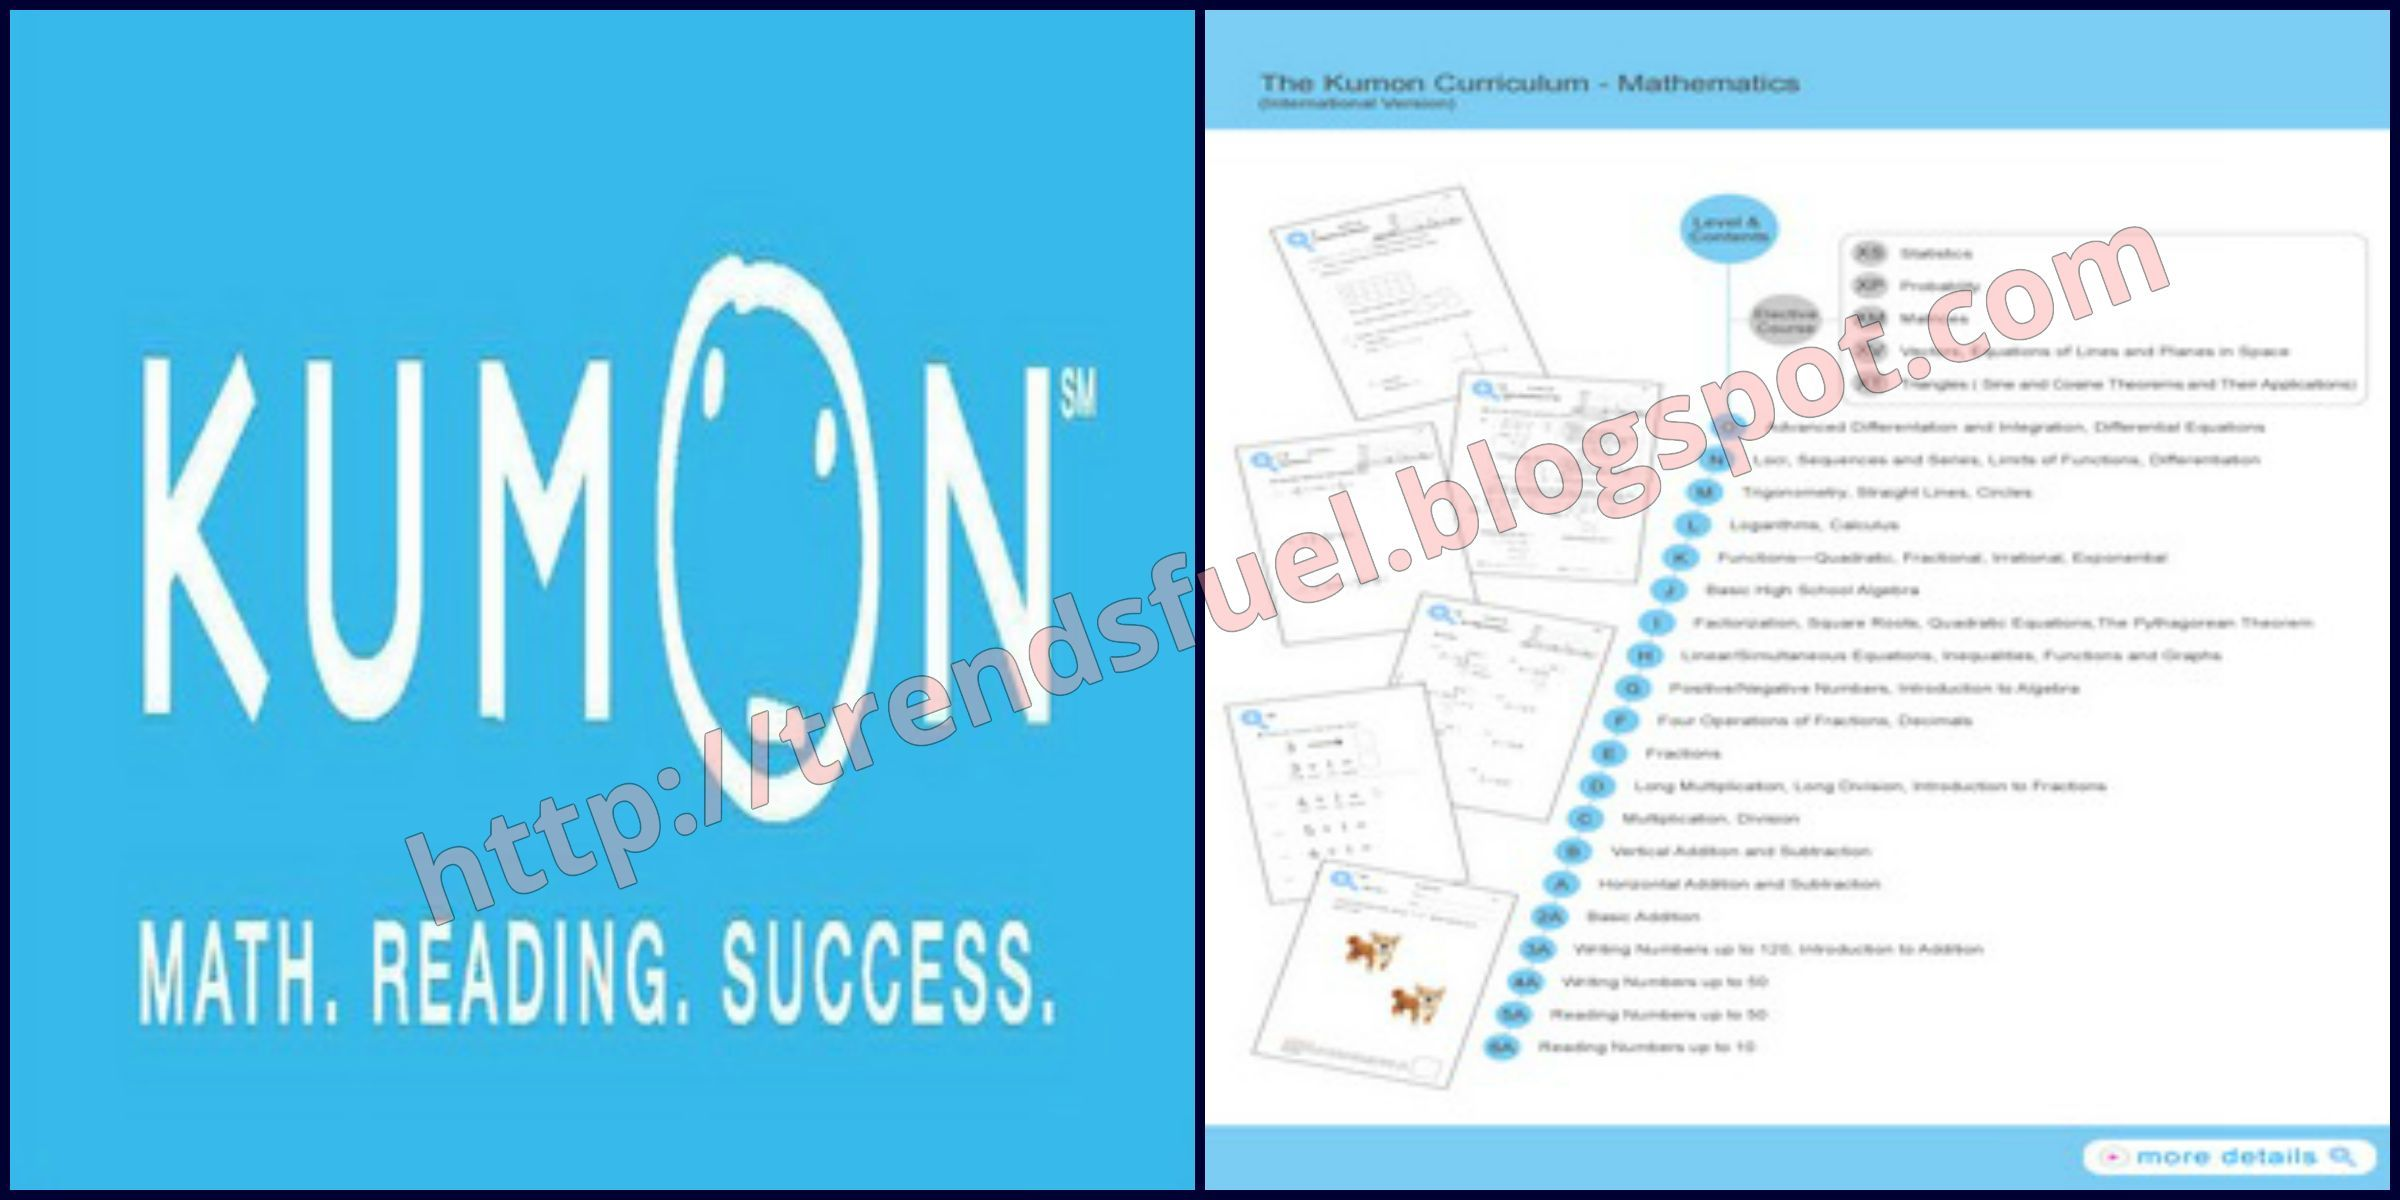 worksheet Kumon Printable Worksheets over here you can see and read about kumon worksheets australia method all free printable download it too w